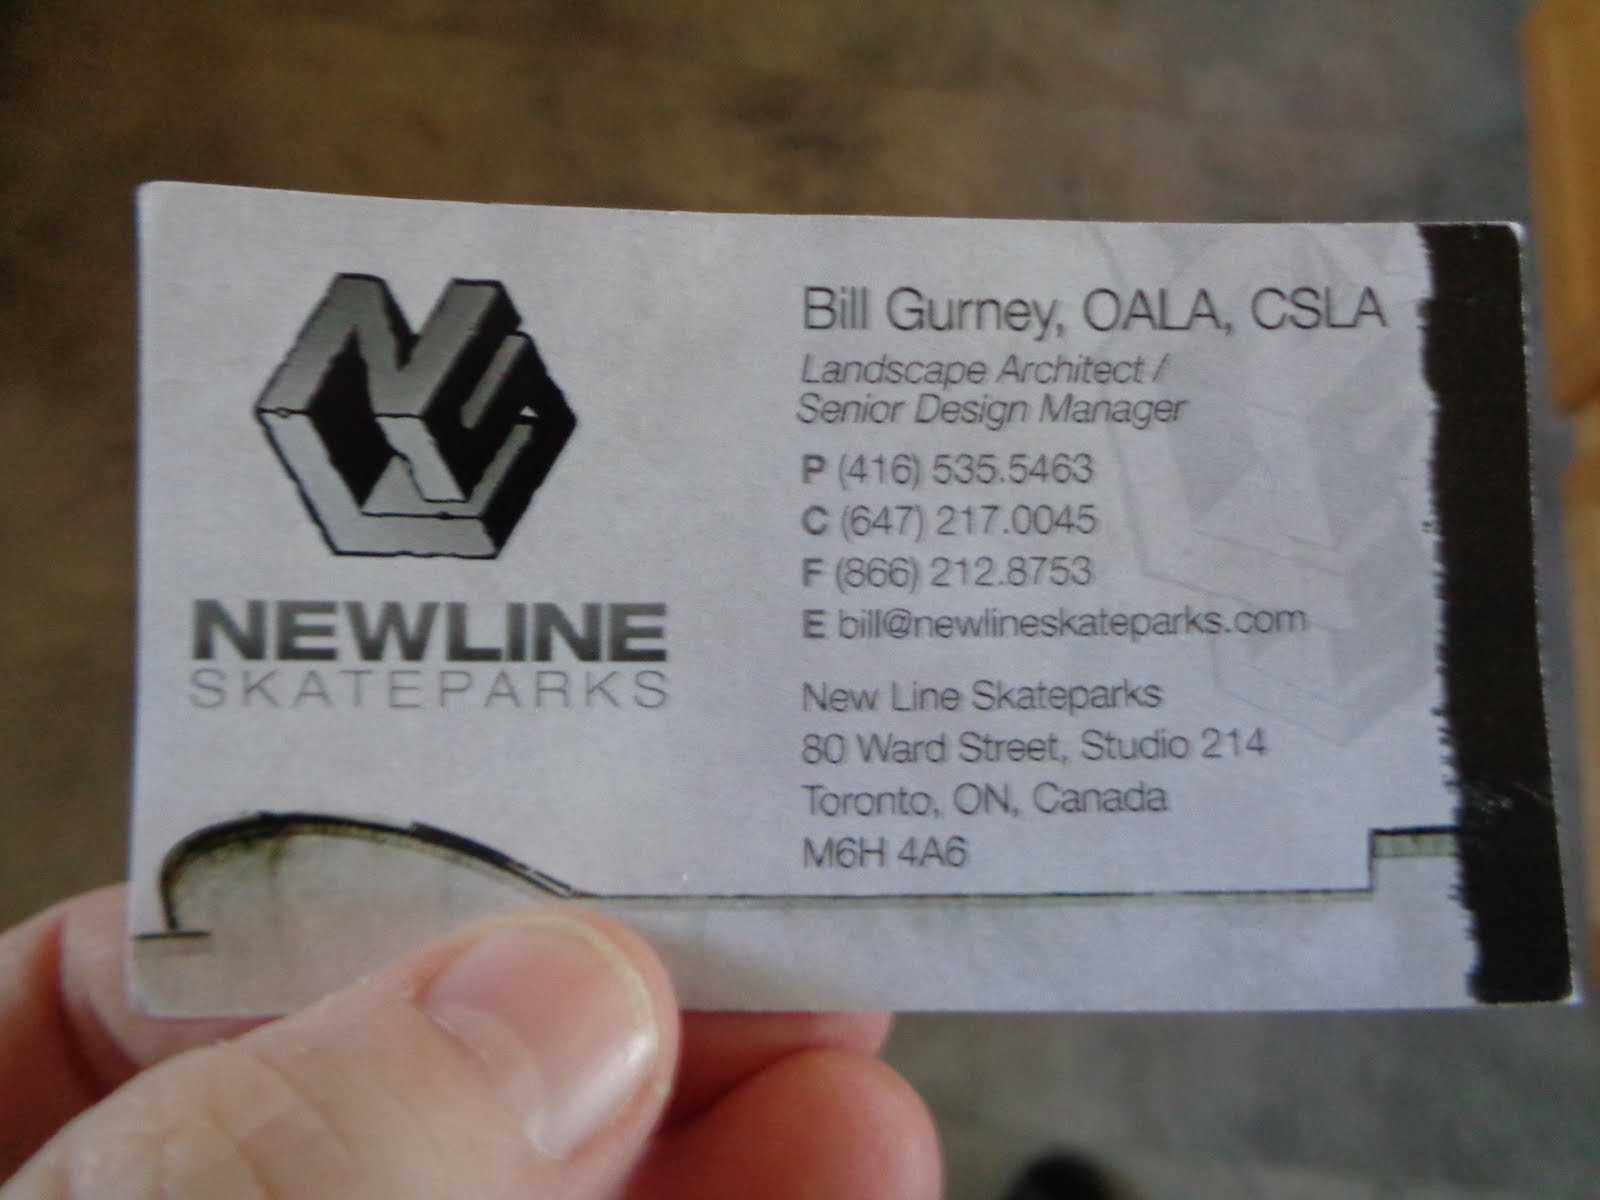 New Line Skateparks - Bill Gurney